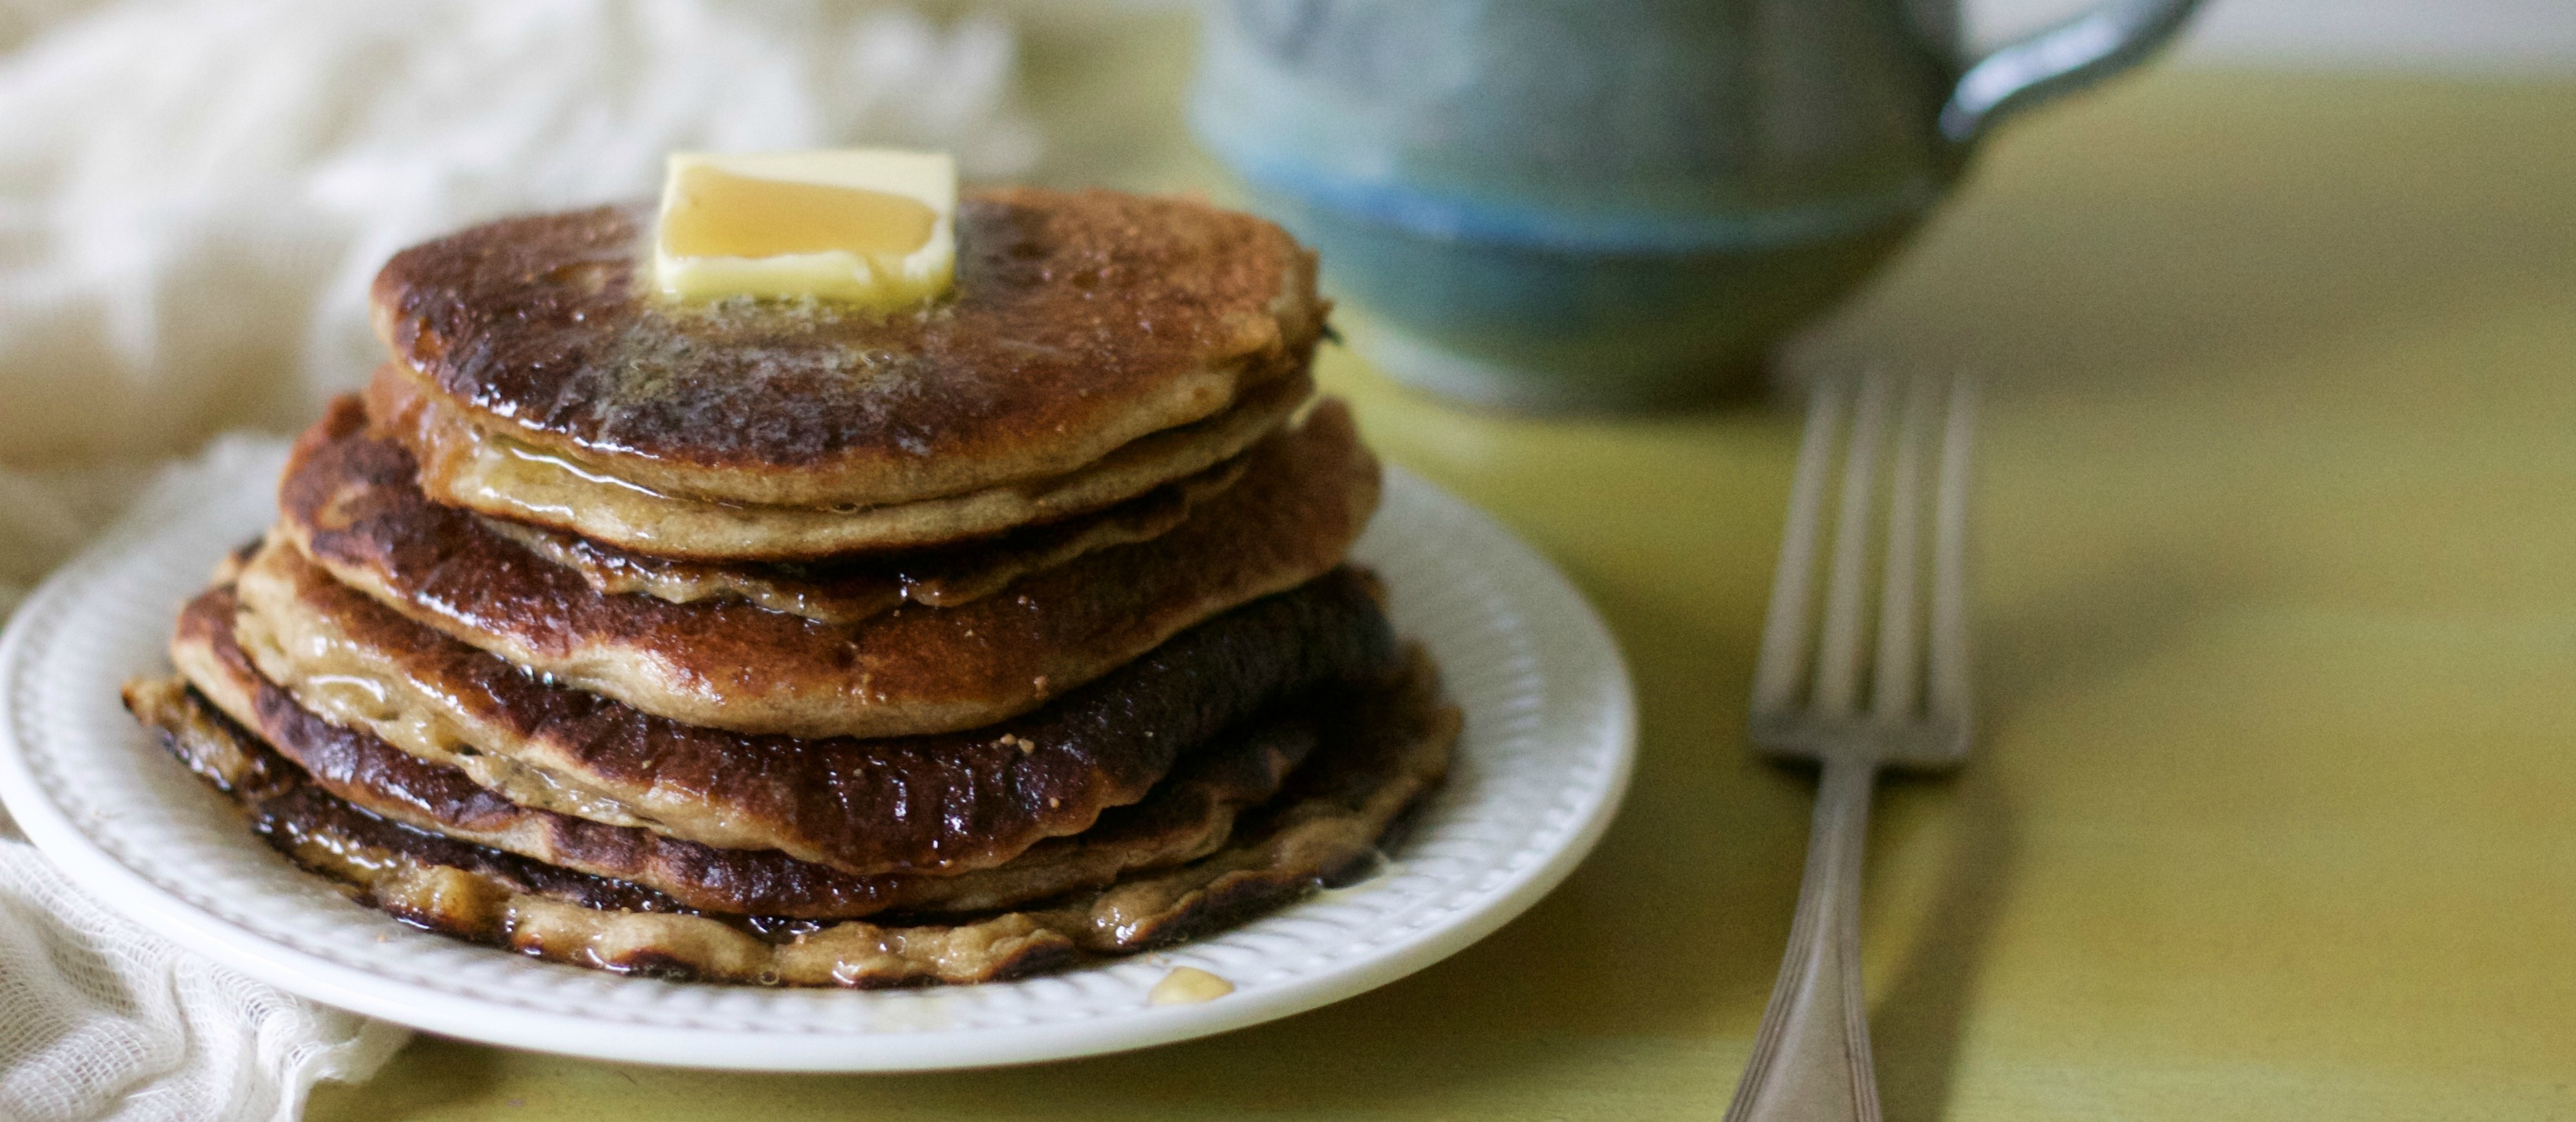 Stack of pancakes topped with butter and syrup on a green table.